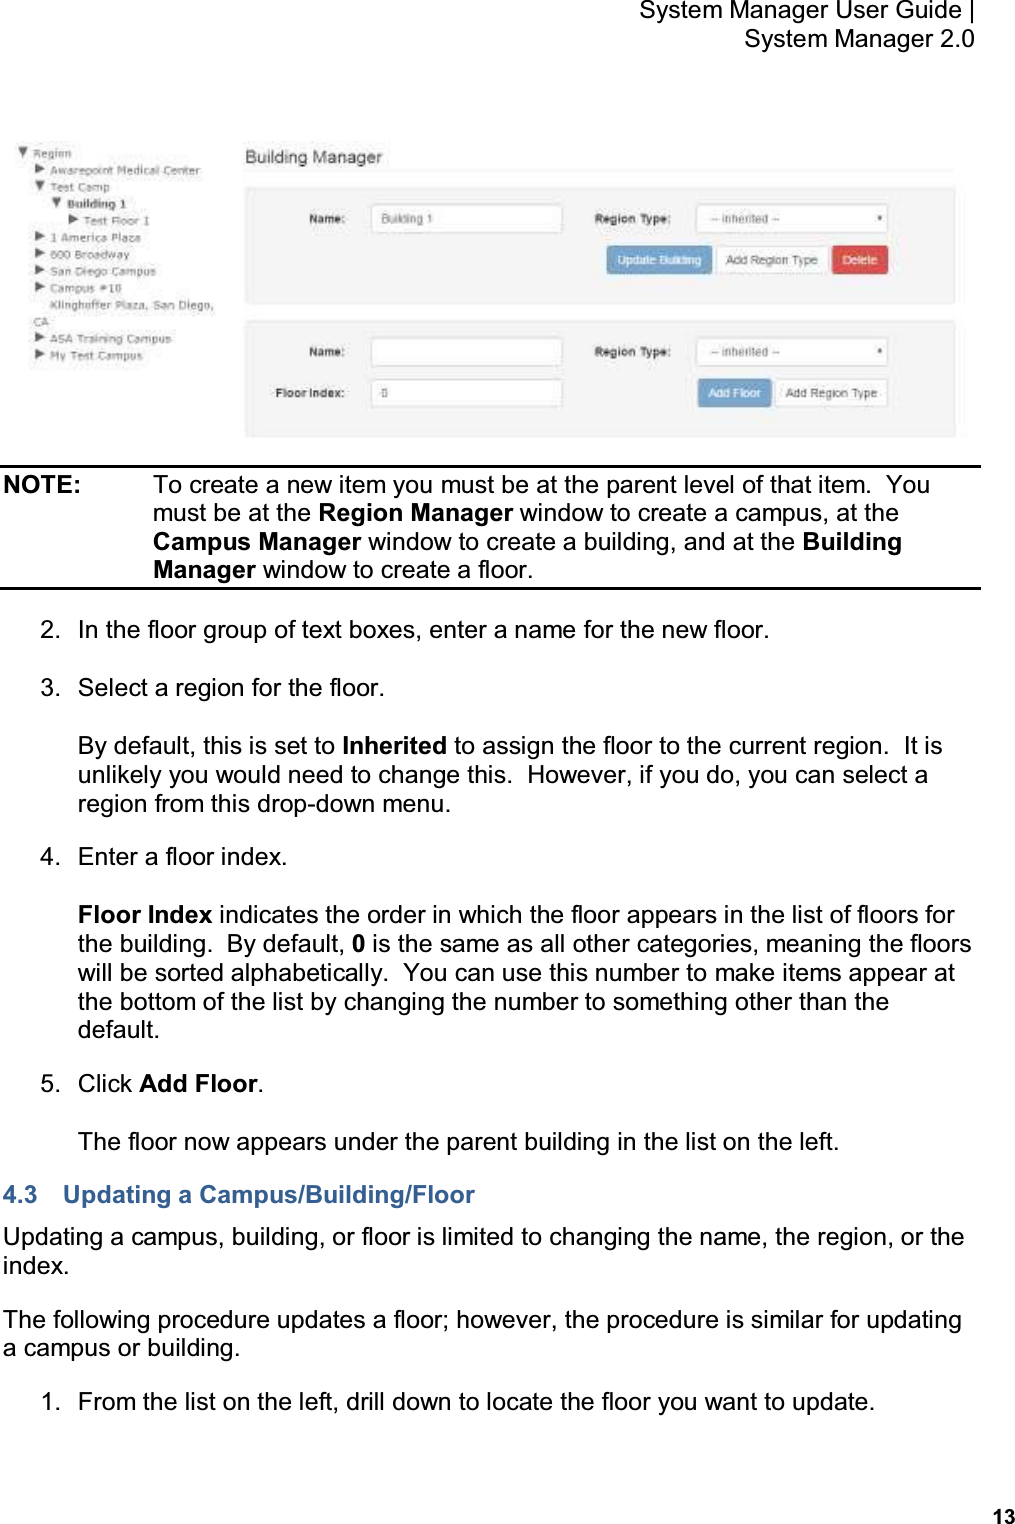 13 System Manager User Guide    System Manager 2.0  NOTE:    To create a new item you must be at the parent level of that item.  You must be at the Region Manager window to create a campus, at the Campus Manager window to create a building, and at the Building Manager window to create a floor. 2.  In the floor group of text boxes, enter a name for the new floor. 3.  Select a region for the floor. By default, this is set to Inherited to assign the floor to the current region.  It is unlikely you would need to change this.  However, if you do, you can select a region from this drop-down menu. 4.  Enter a floor index. Floor Index indicates the order in which the floor appears in the list of floors for the building.  By default, 0 is the same as all other categories, meaning the floors will be sorted alphabetically.  You can use this number to make items appear at the bottom of the list by changing the number to something other than the default. 5.  Click Add Floor. The floor now appears under the parent building in the list on the left. 4.3  Updating a Campus/Building/Floor Updating a campus, building, or floor is limited to changing the name, the region, or the index. The following procedure updates a floor; however, the procedure is similar for updating a campus or building. 1.  From the list on the left, drill down to locate the floor you want to update.